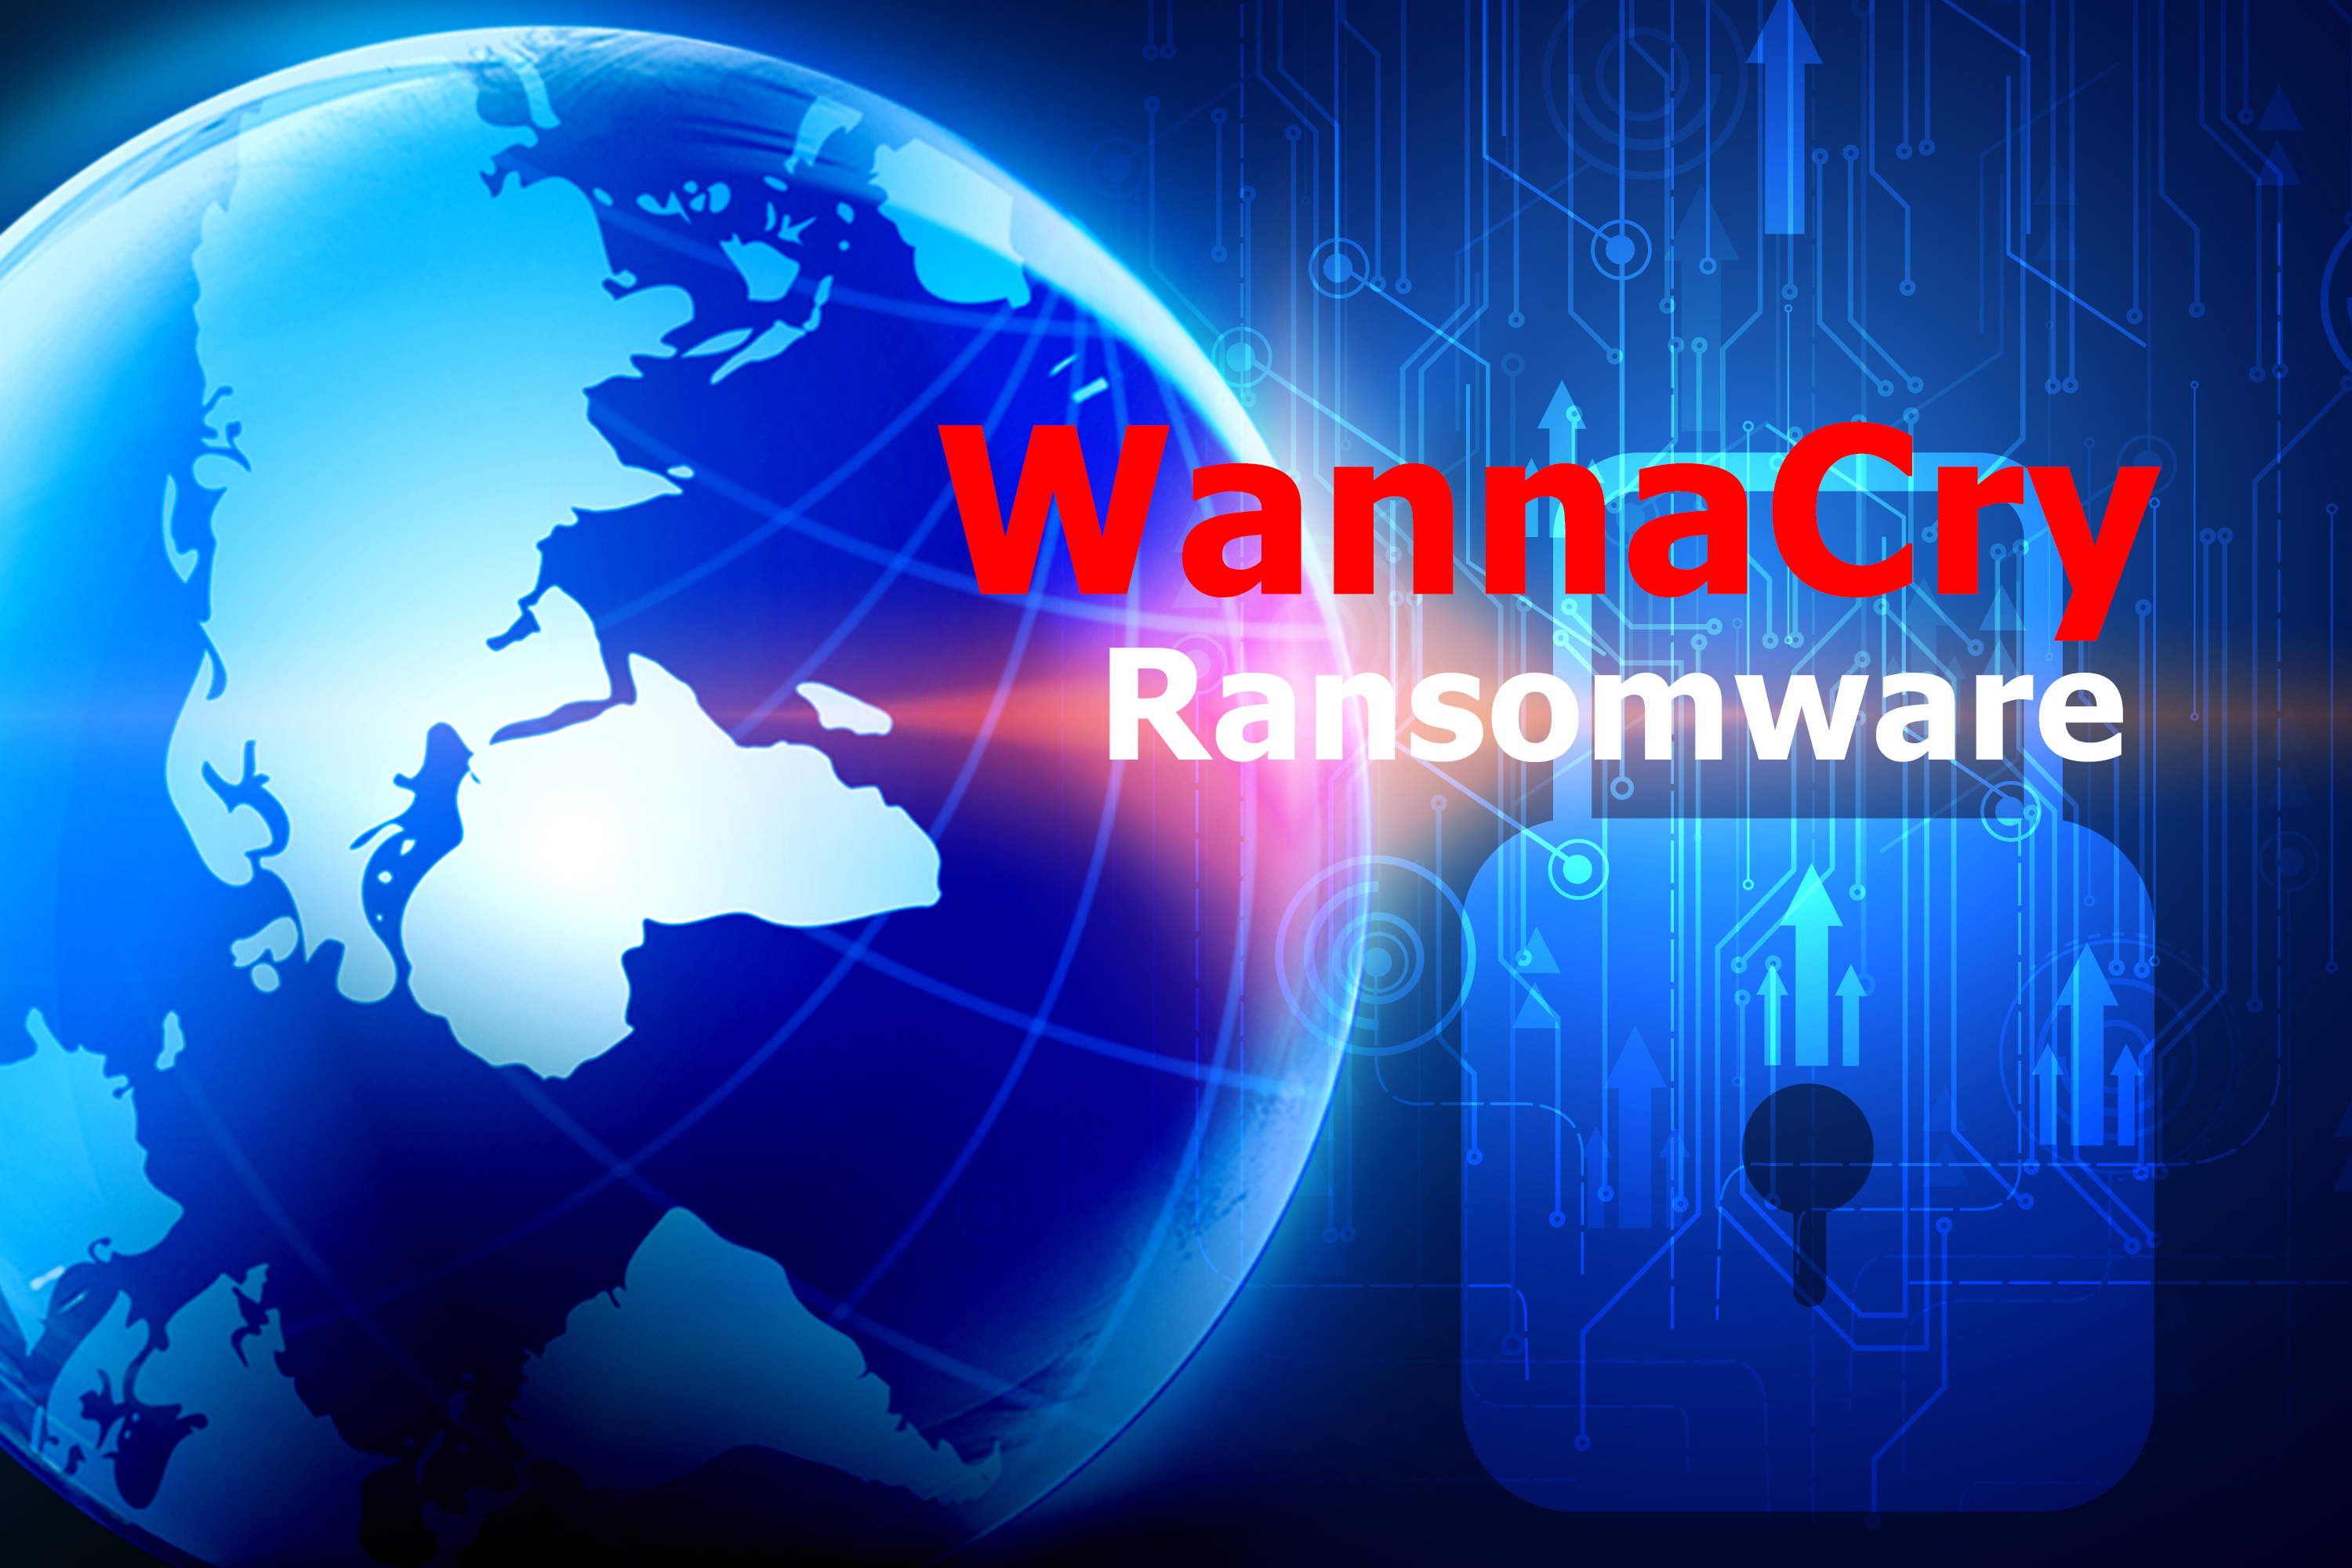 Ransomware Attack Leaves Some Companies WannaCrying Over Technical Debt